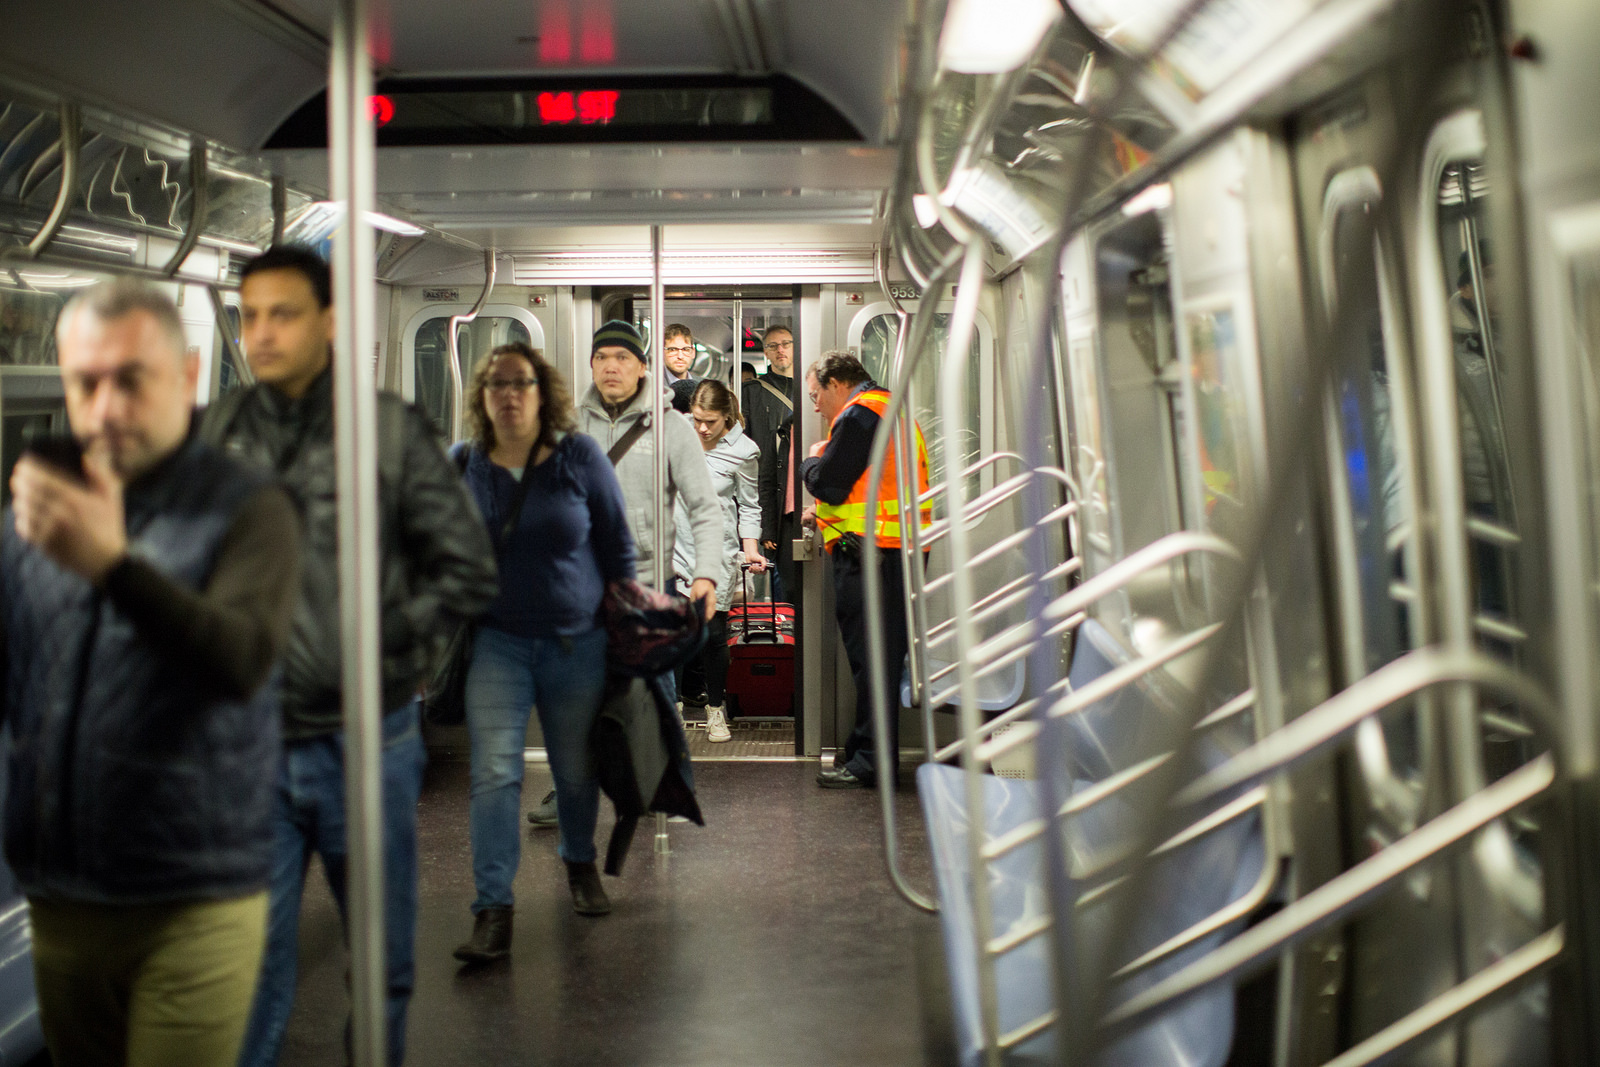 NYC subway ridership dropped for the second straight year in 2017